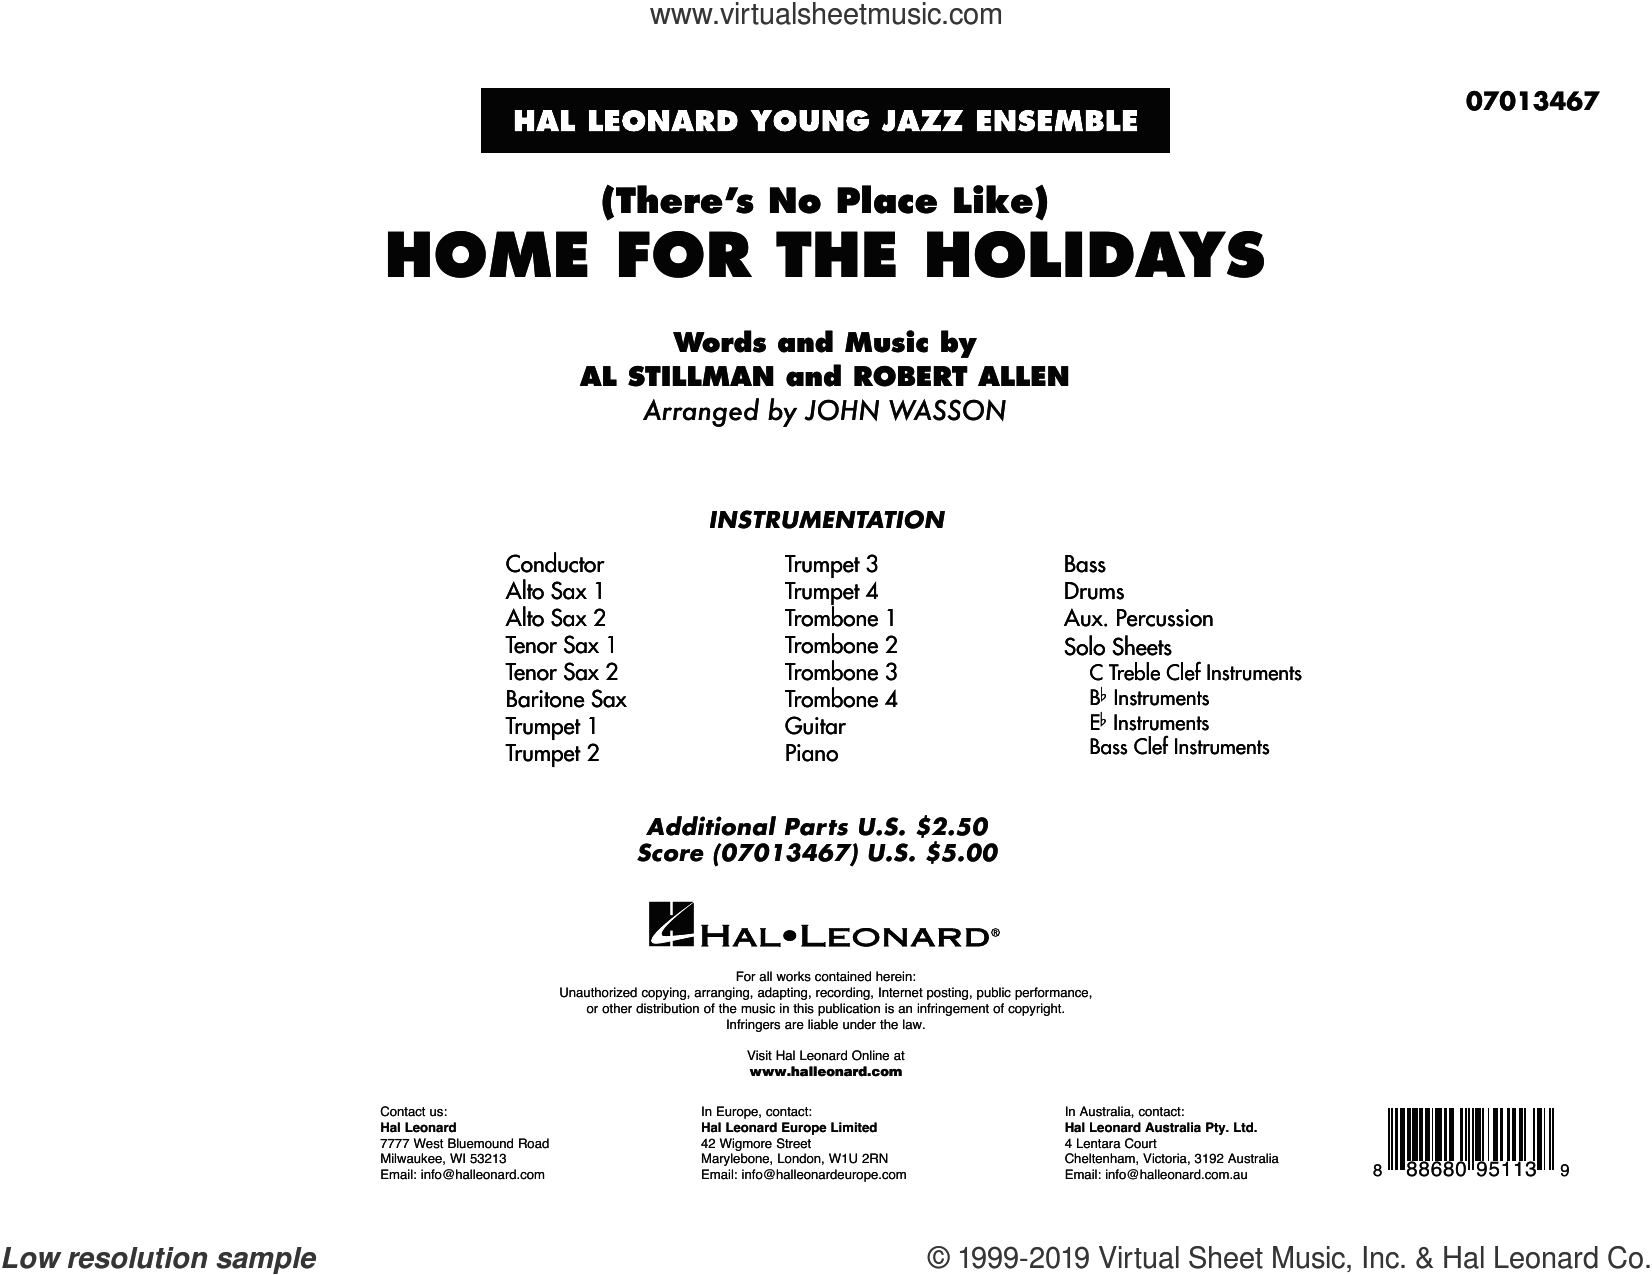 (There's No Place Like) Home for the Holidays (arr. John Wasson) (COMPLETE) sheet music for jazz band by Perry Como, Al Stillman, John Wasson and Robert Allen, intermediate skill level